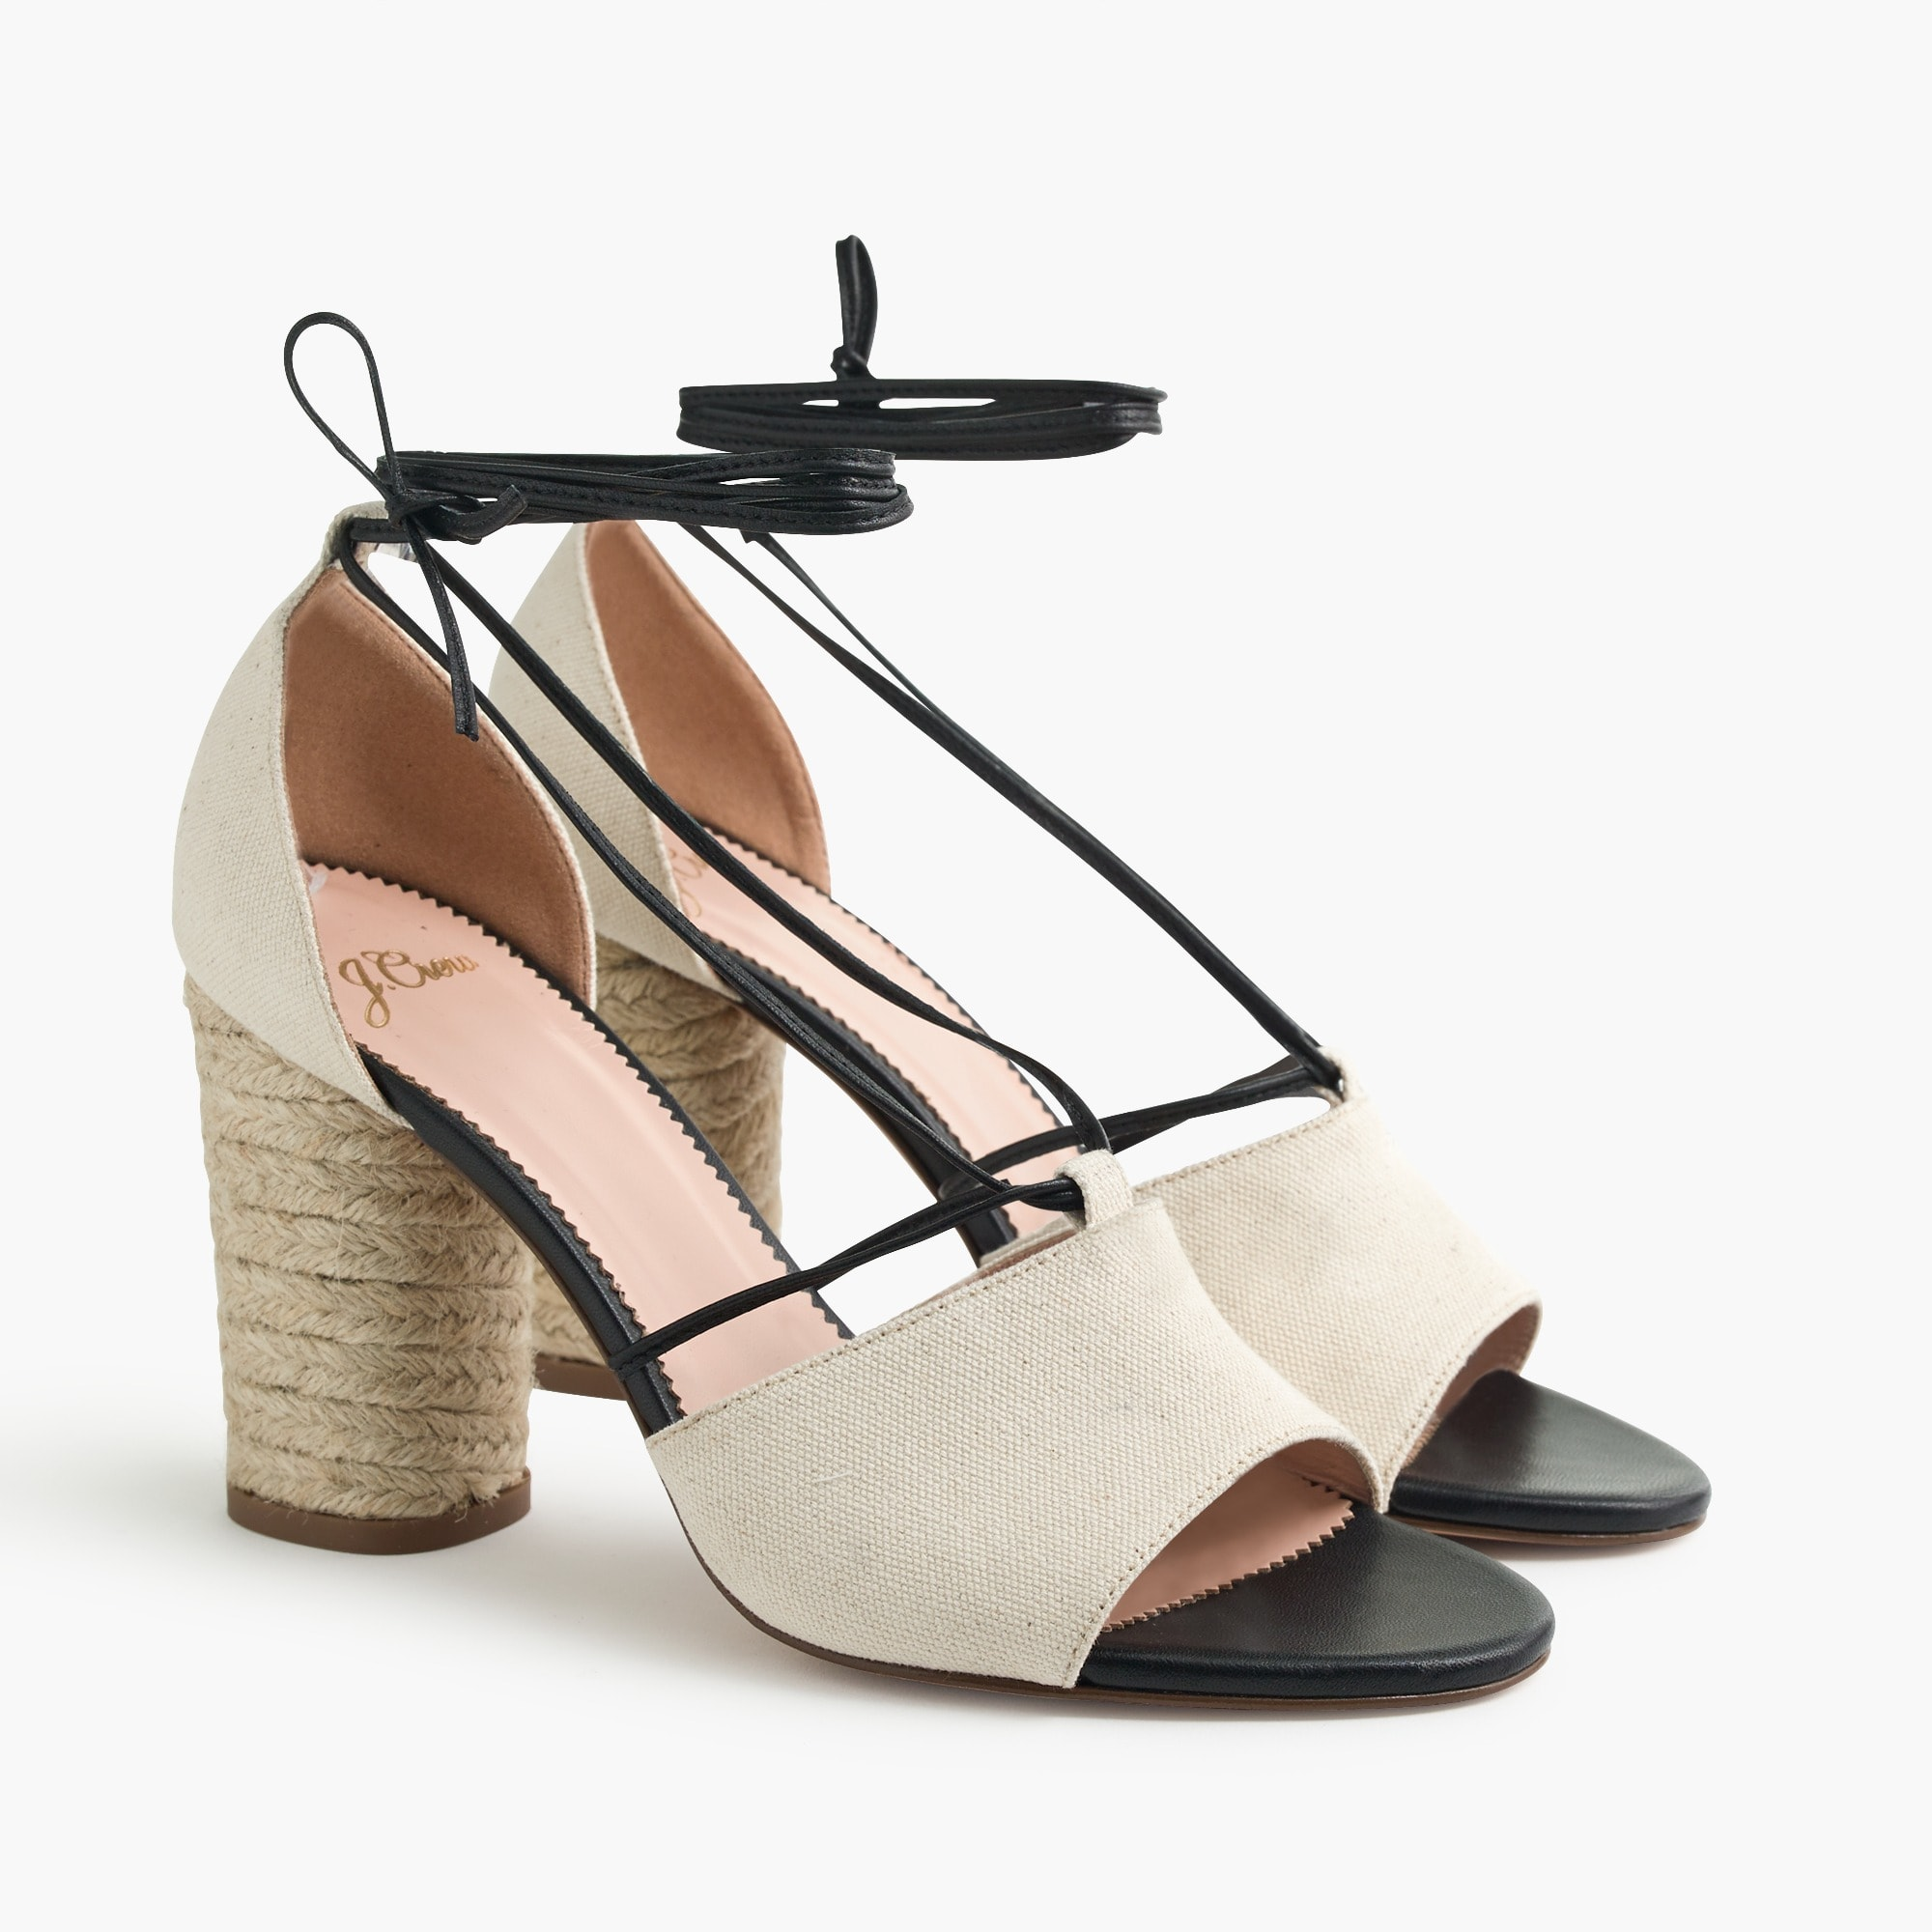 Stella heels in canvas with leather tie straps